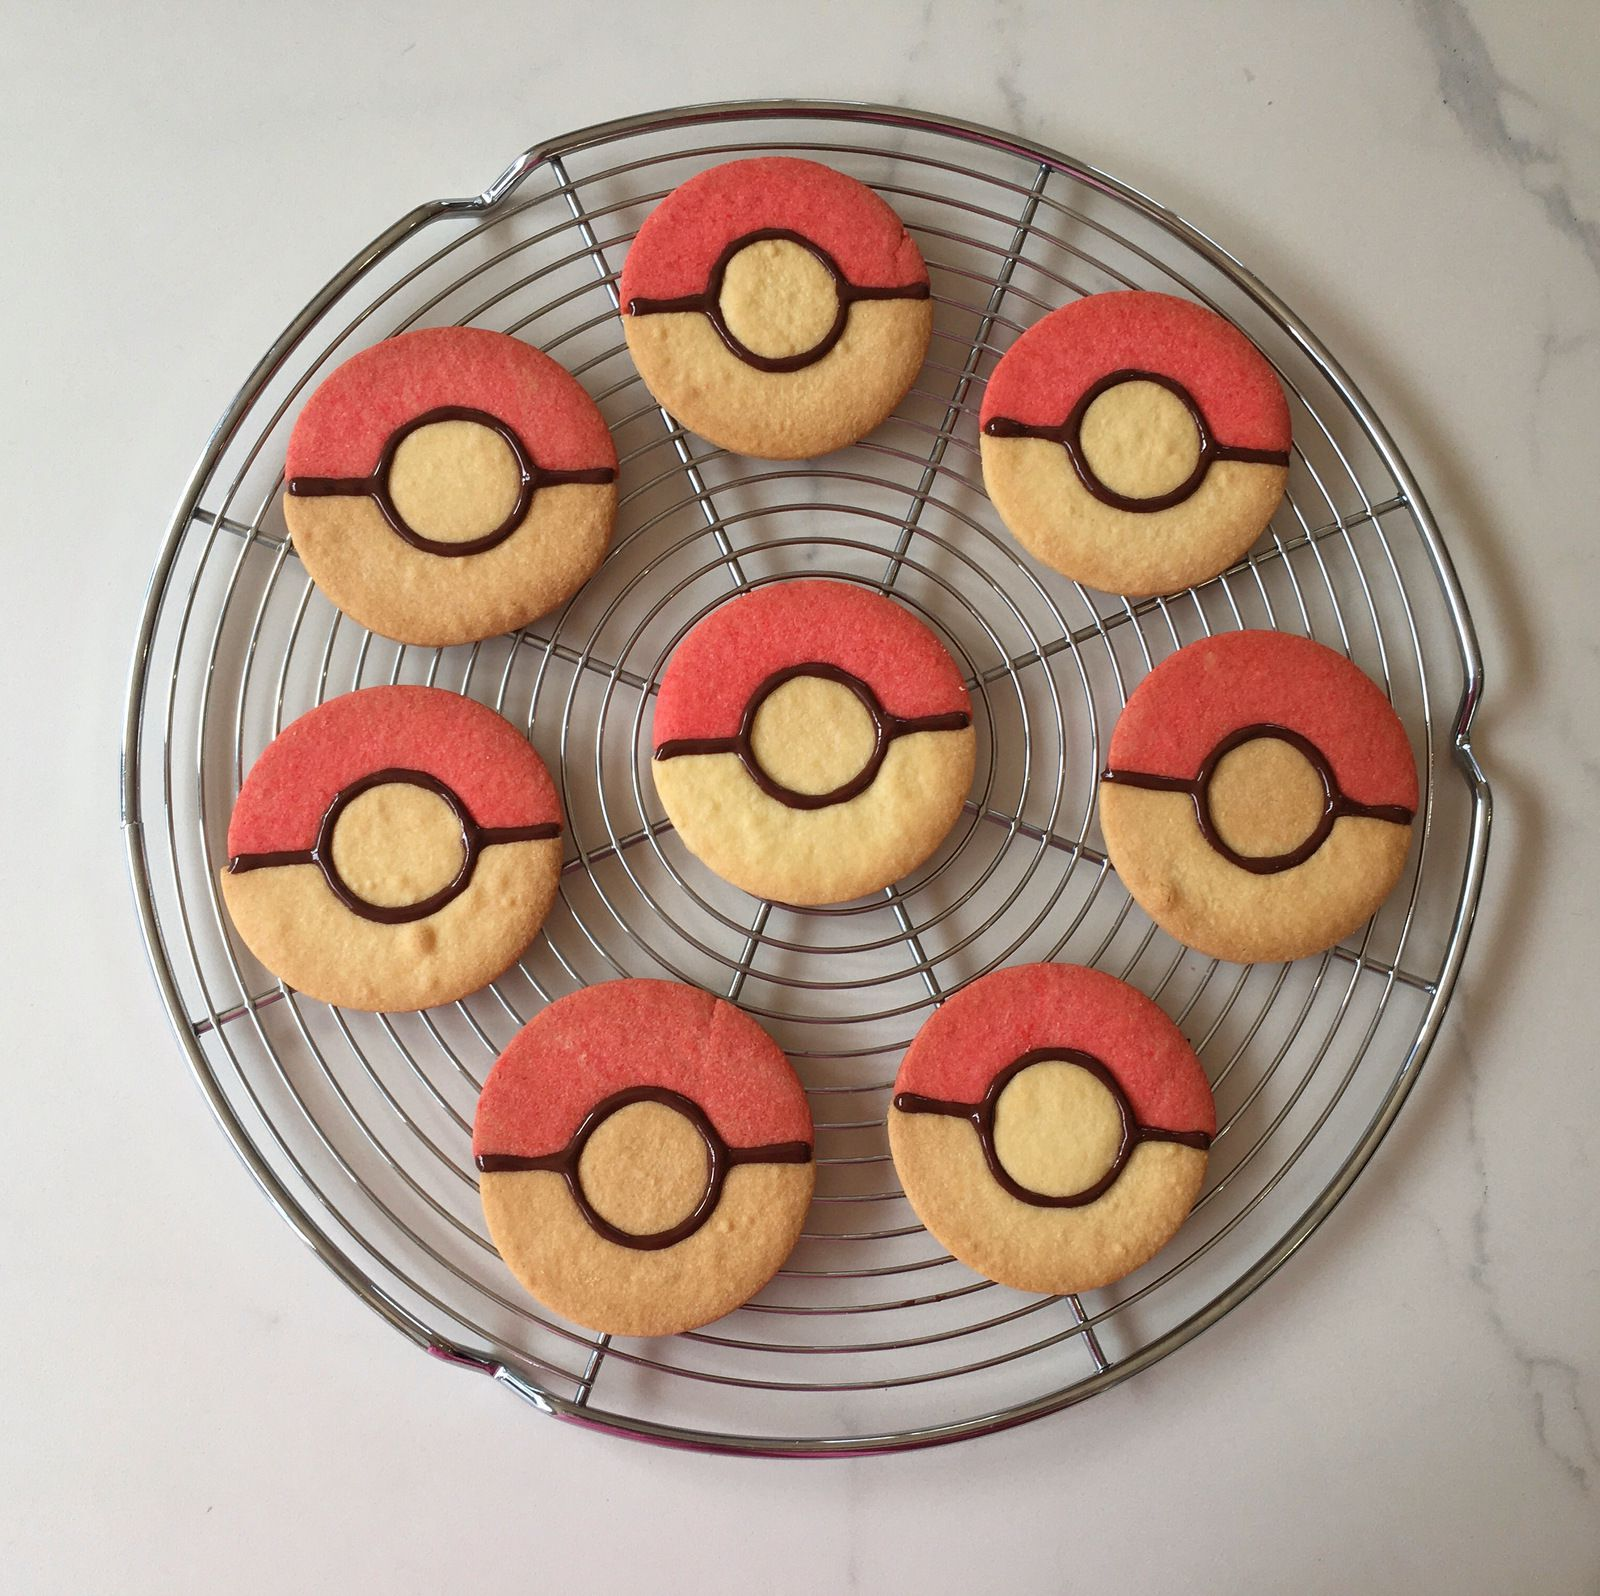 Les biscuits Pokeball